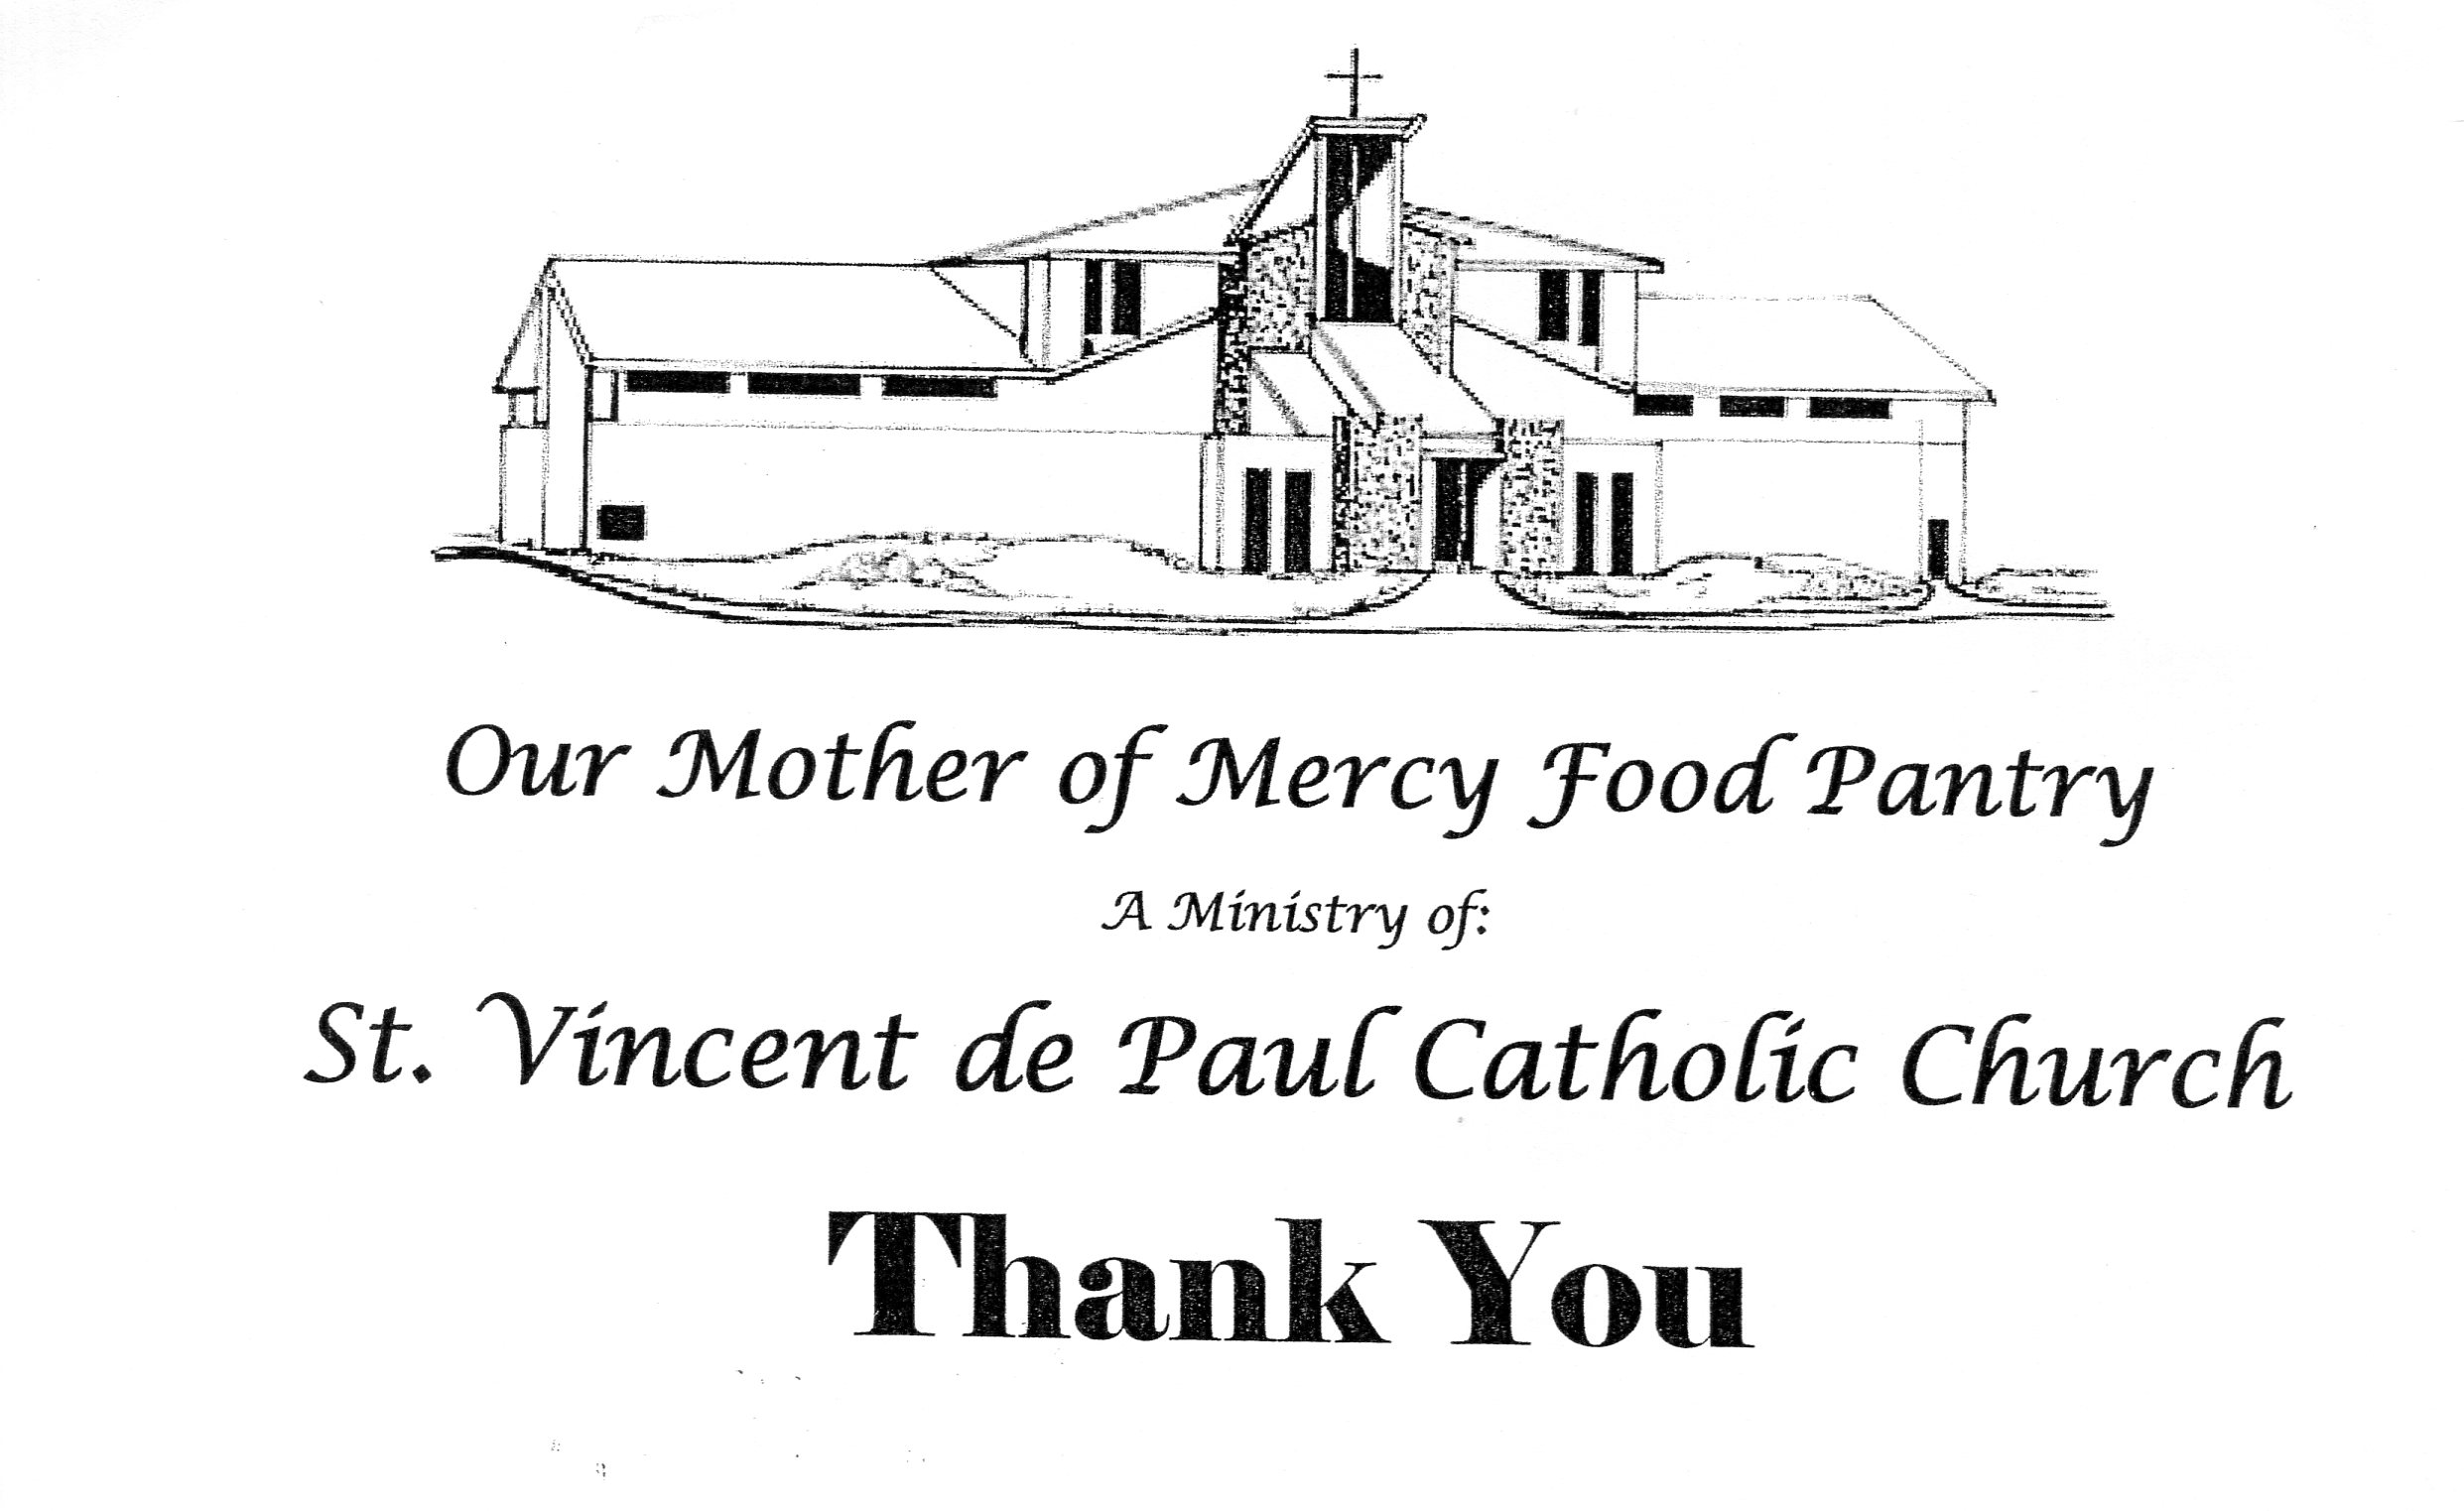 Food Pantry Thank You Card